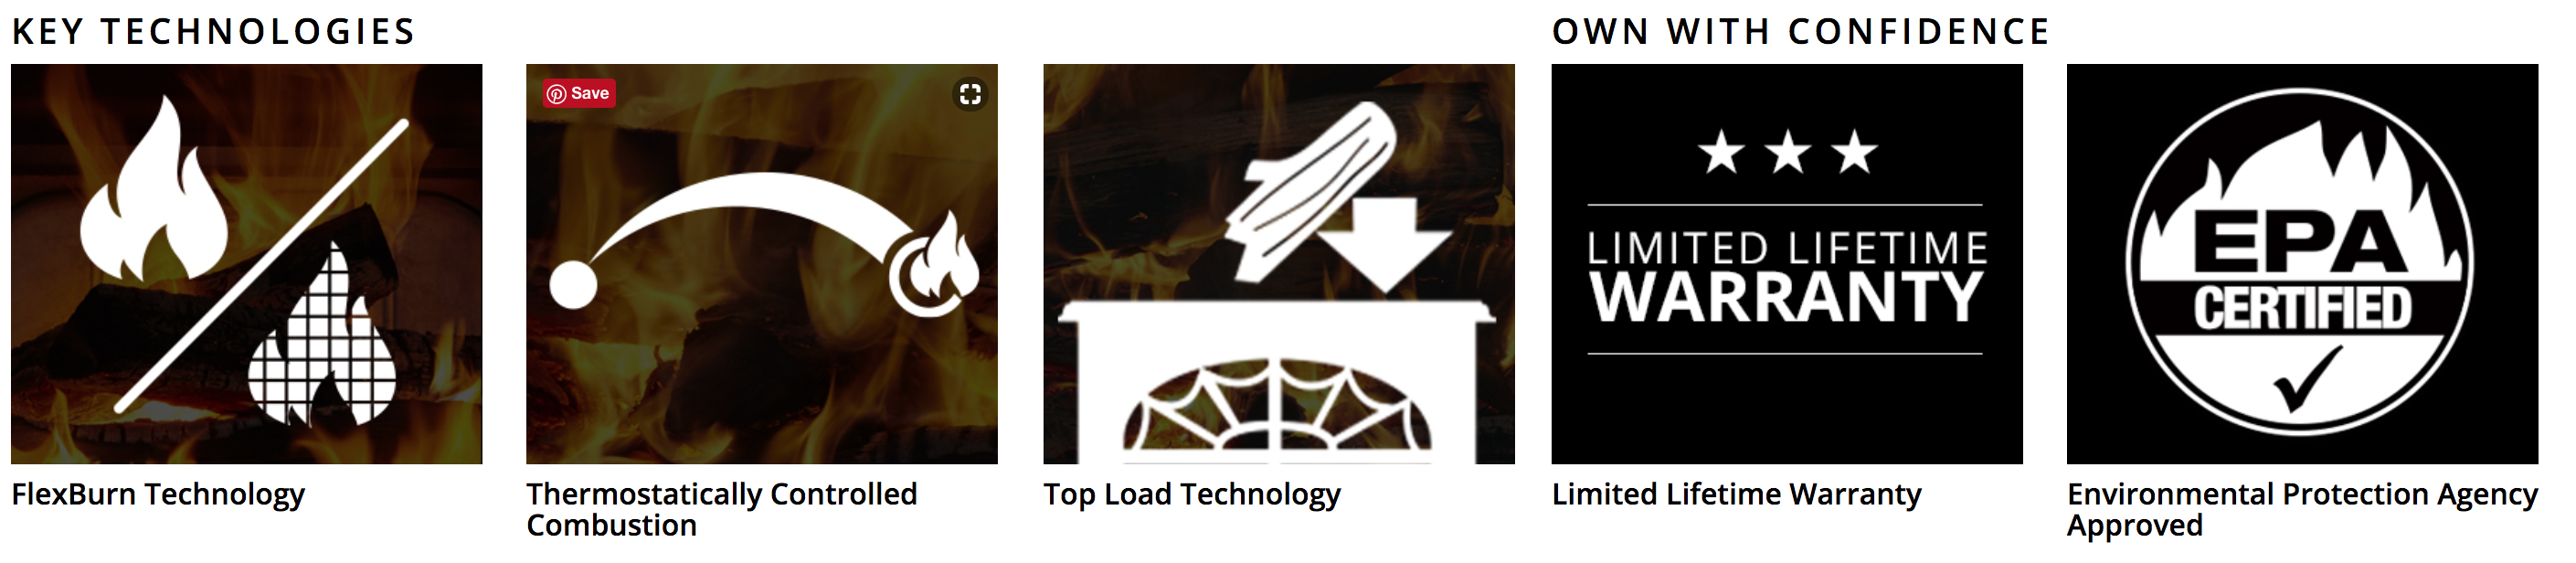 vermont.embers.key.technologies.png